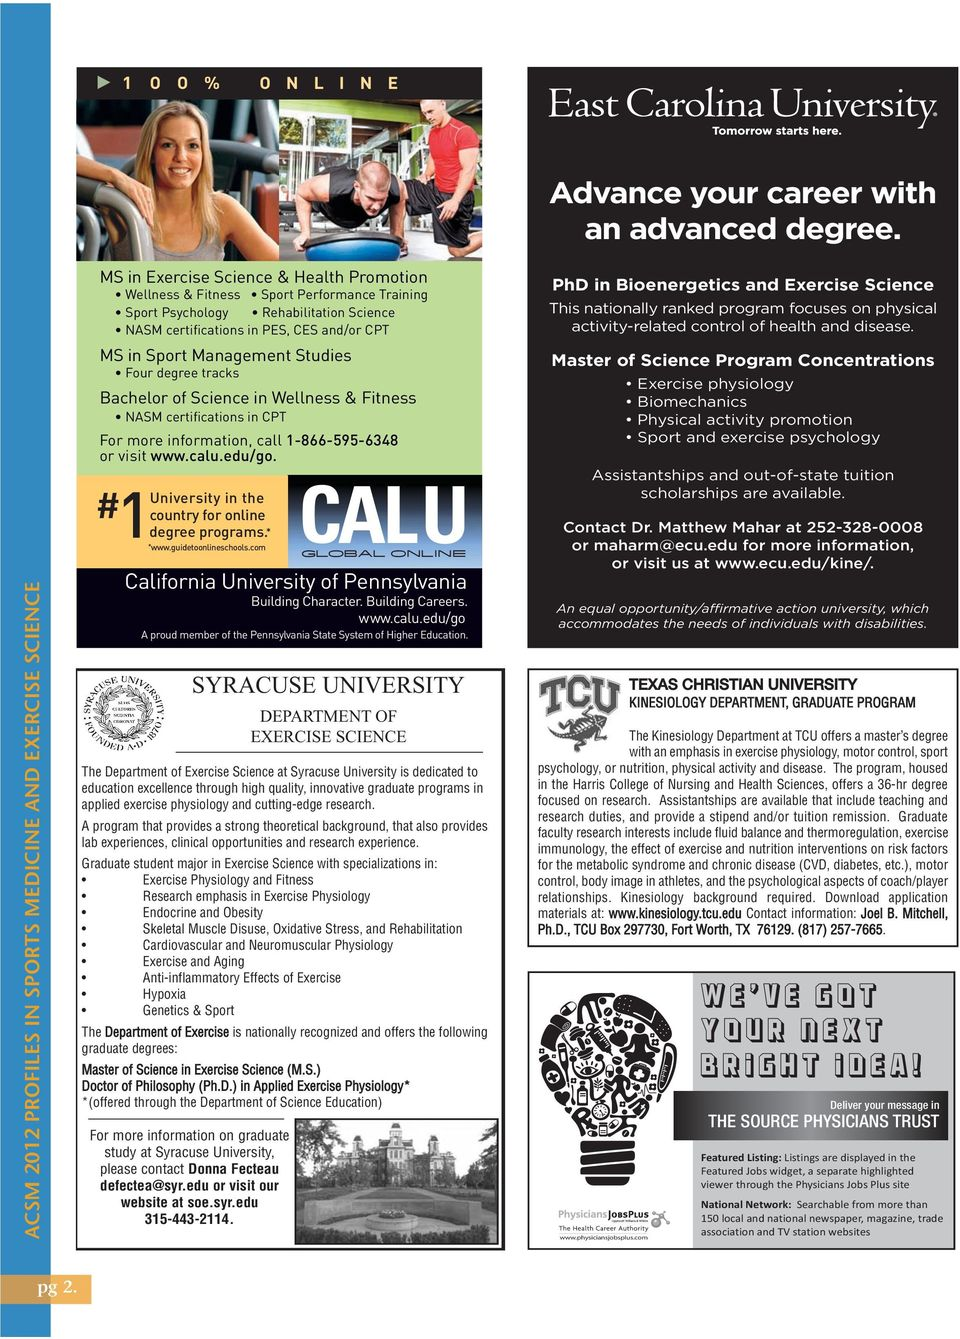 1-866-595-6348 or visit www.calu.edu/go. # 1*www.guidetoonlineschools.com University in the country for online degree programs.